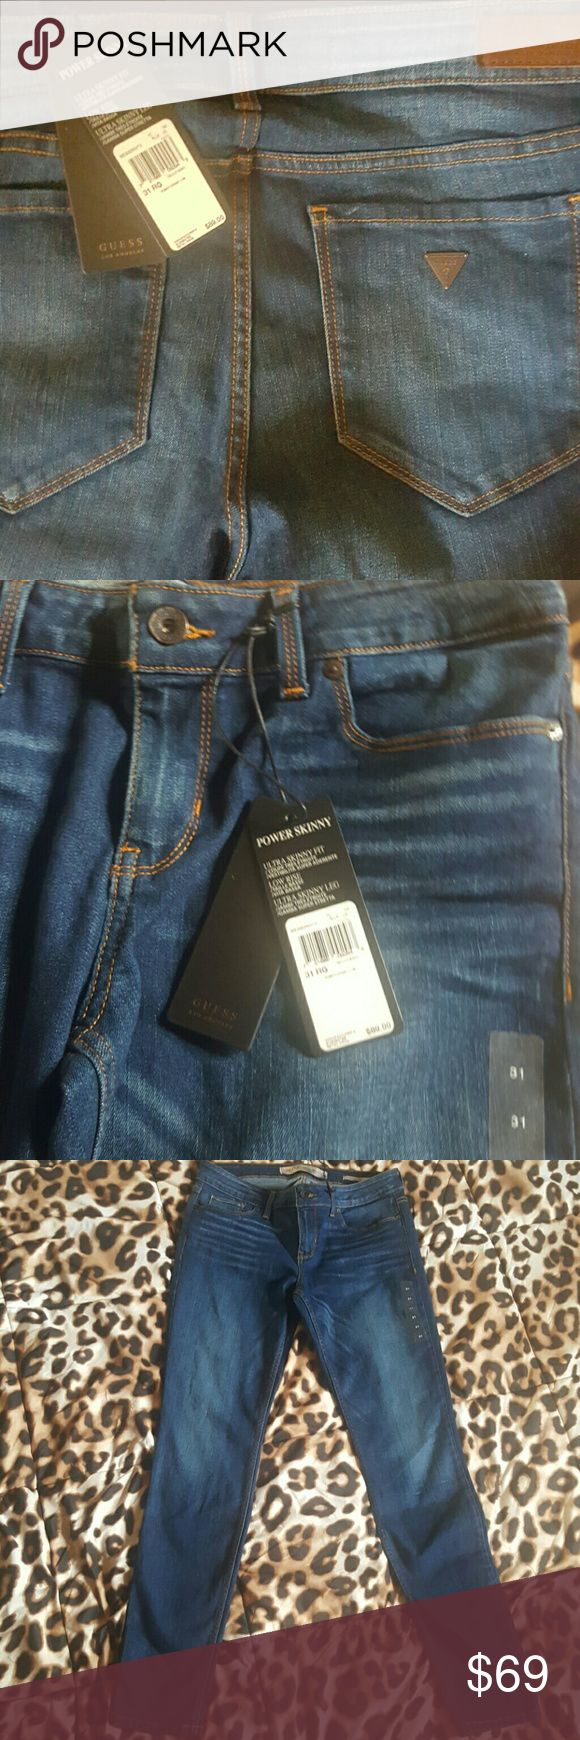 FLASH $25 GUESS  Power Ultra Skinny Low Rise Jean NWT Guess Power Ulta Skinny  Fit Low Rise Denim Jeans   SIZE 31  see pics 3 4, 5, and 6 for more accurate color (  pictures 1 & 2 not accurate color) Guess Jeans Skinny